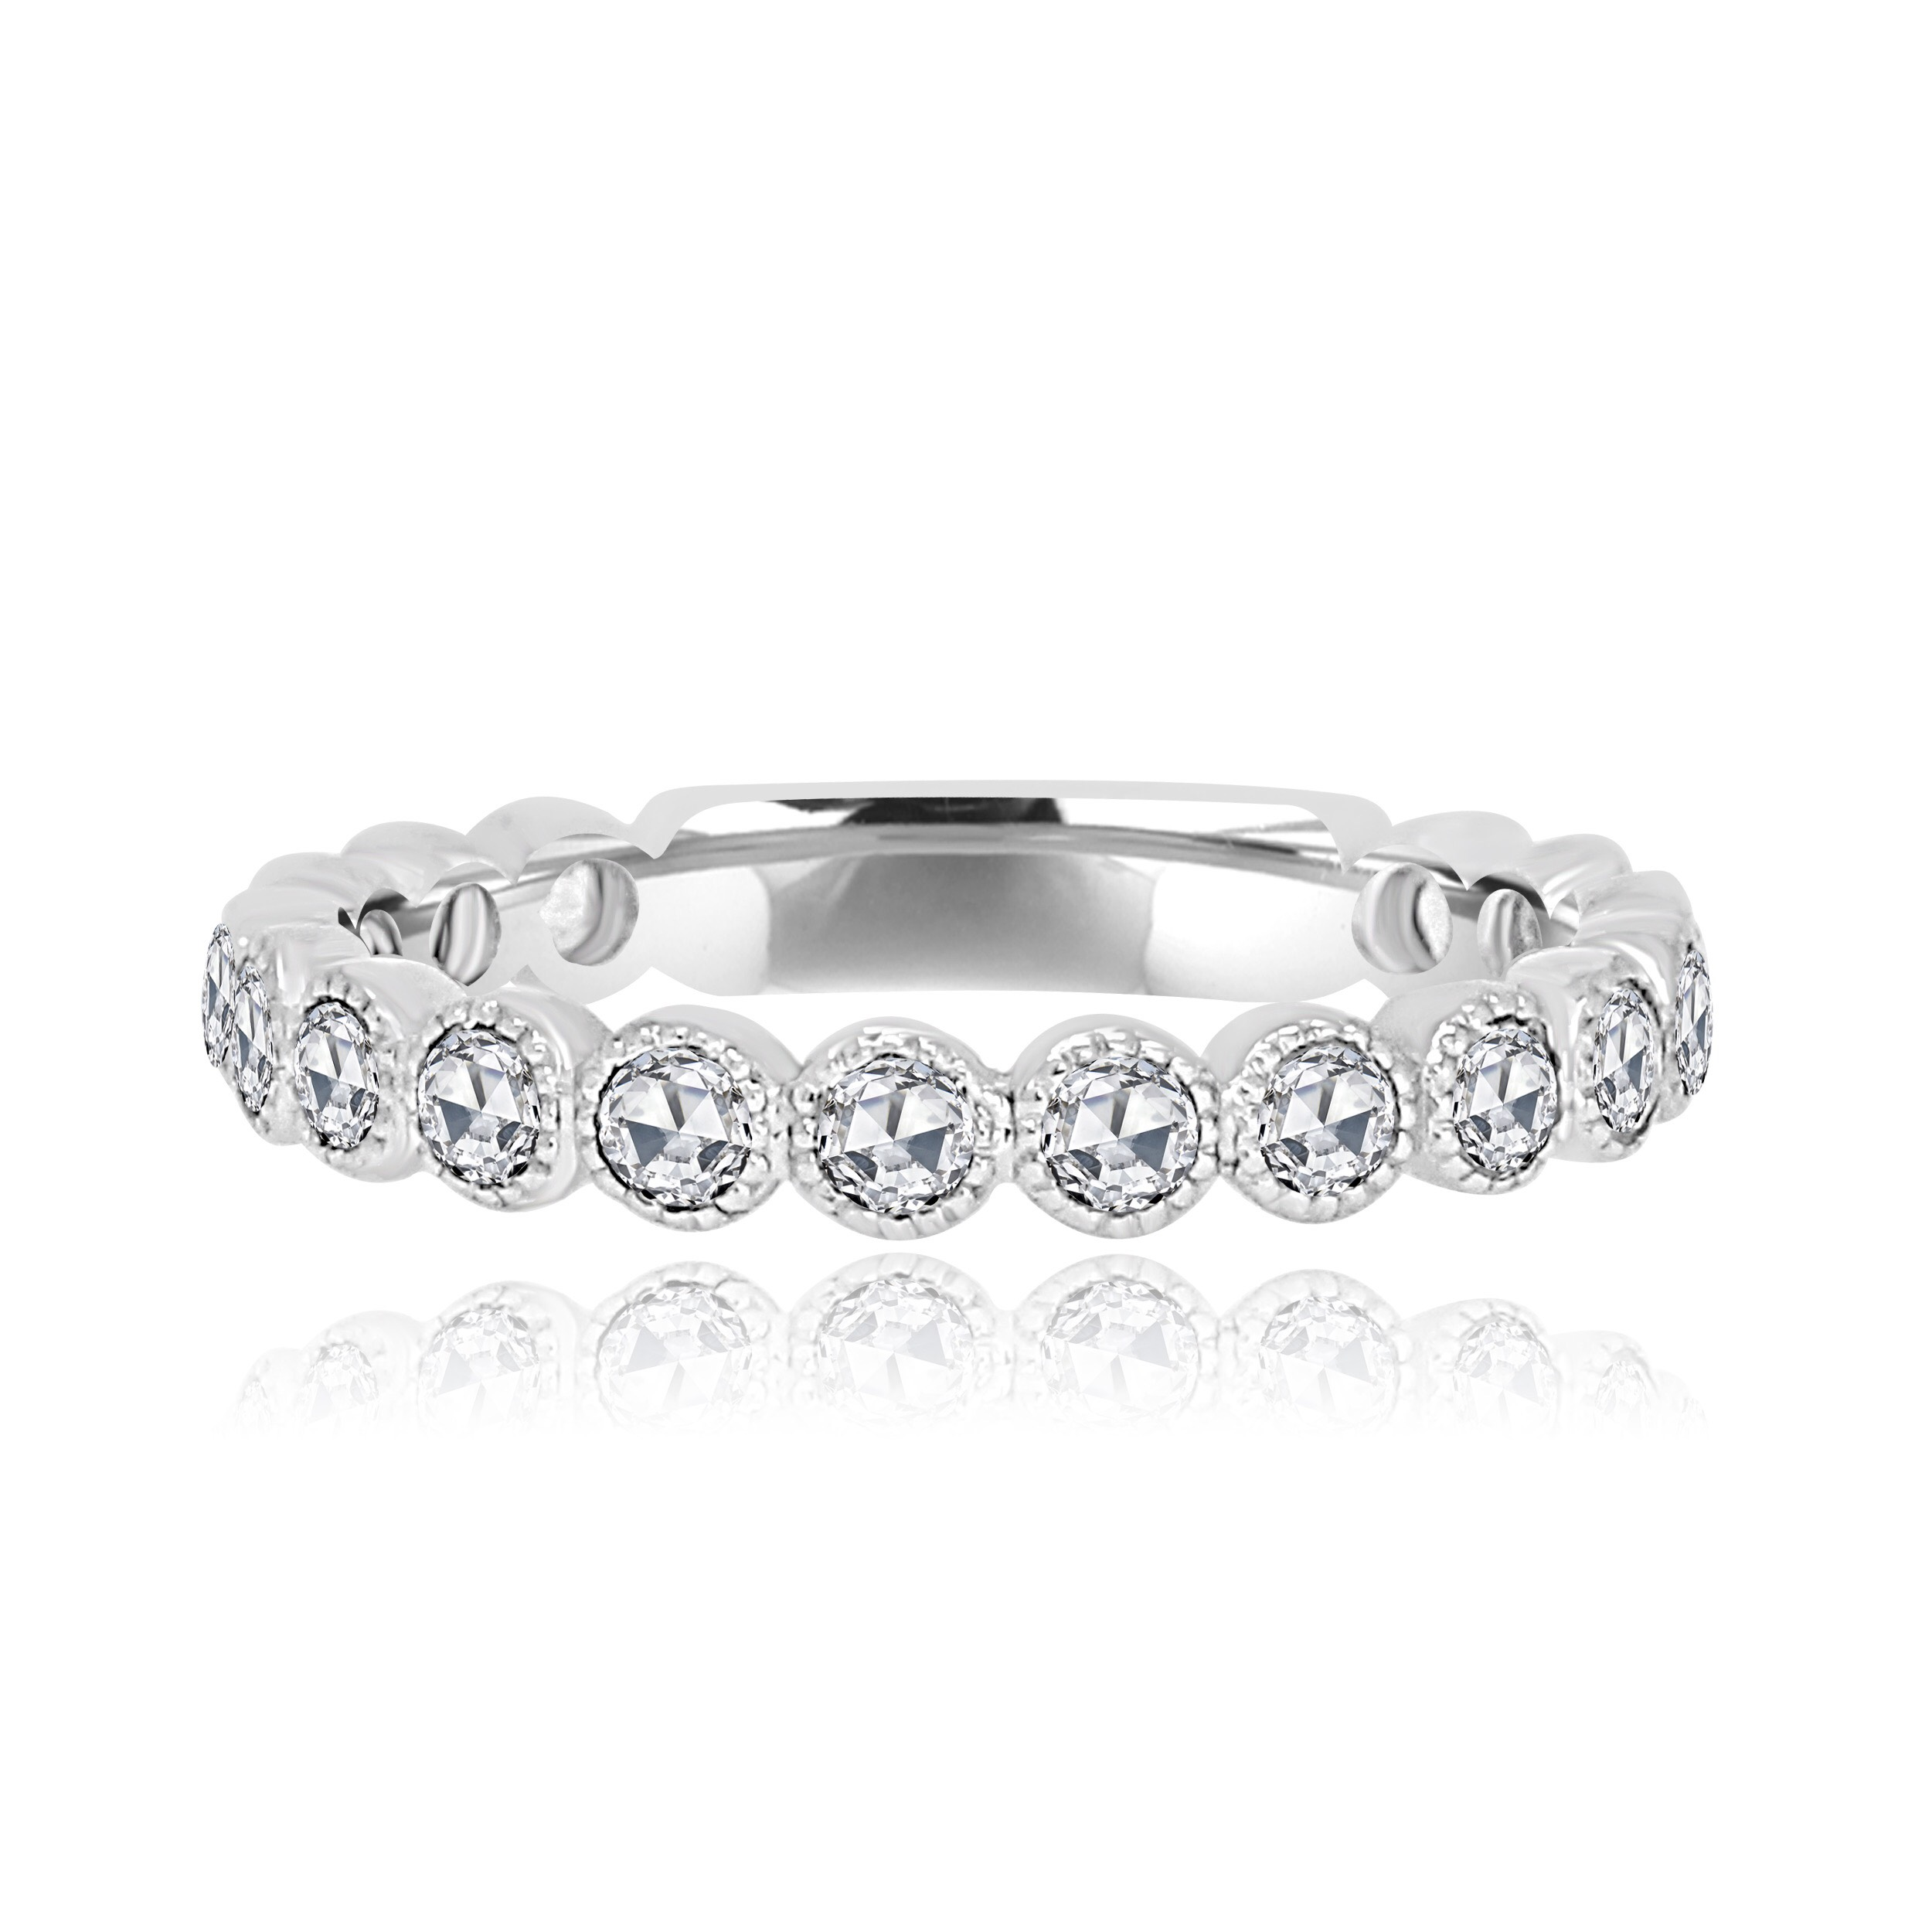 Rose Cut White Gold Diamond Stackable Ring.jpg